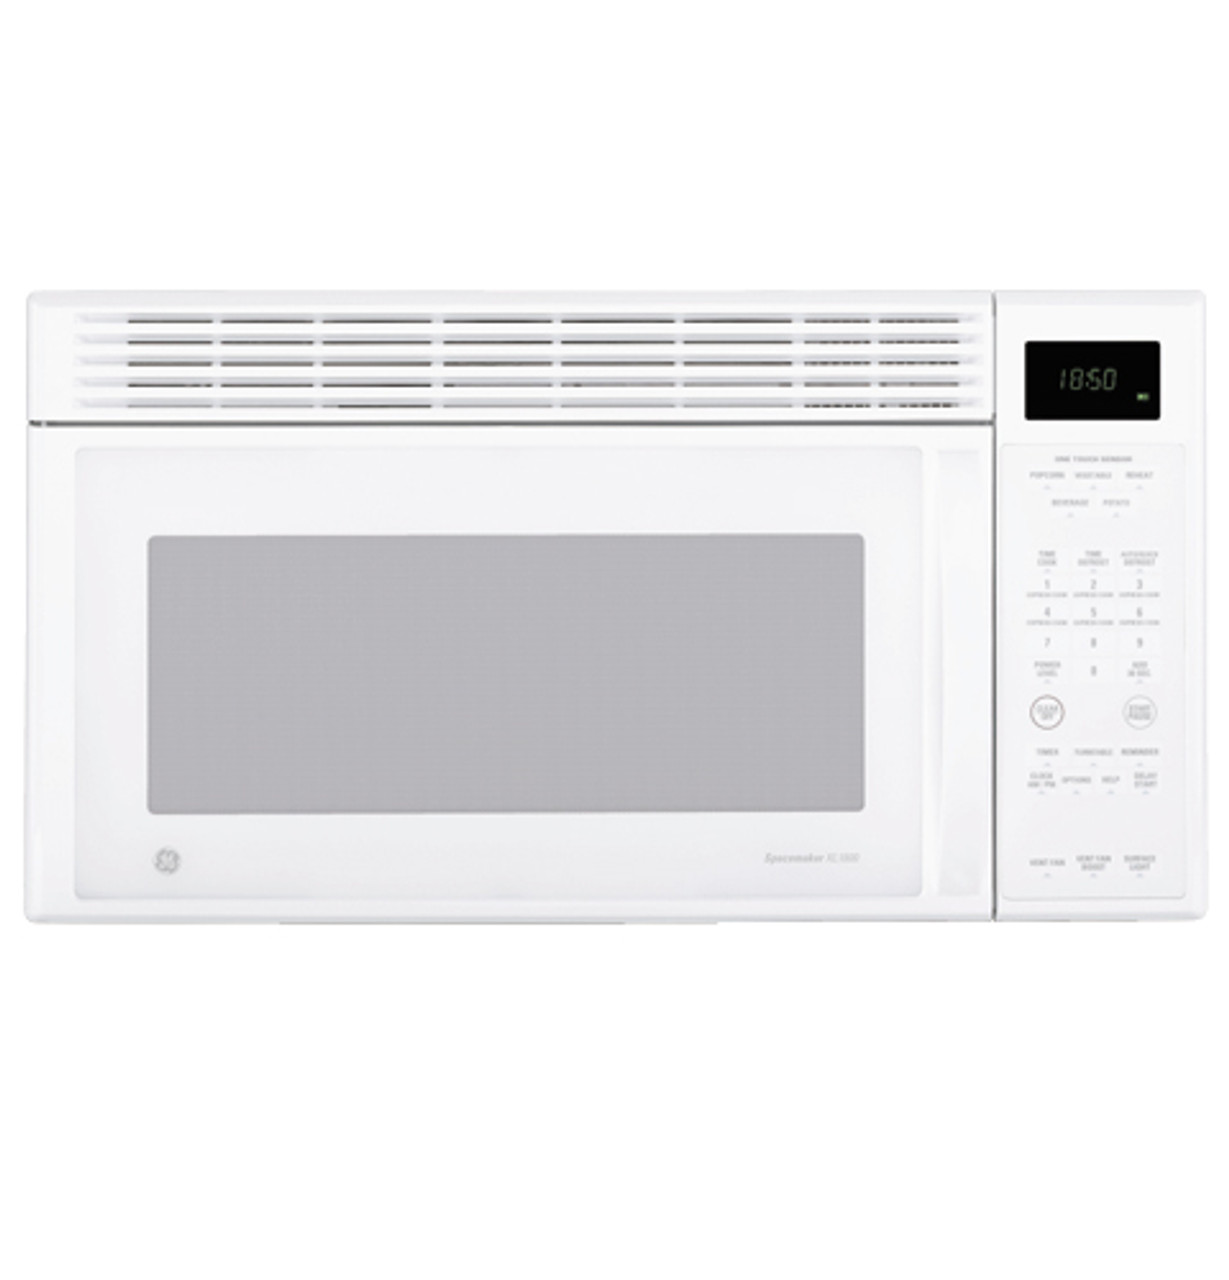 ge spacemaker xl1800 microwave oven with recirculating venting jvm1851wd